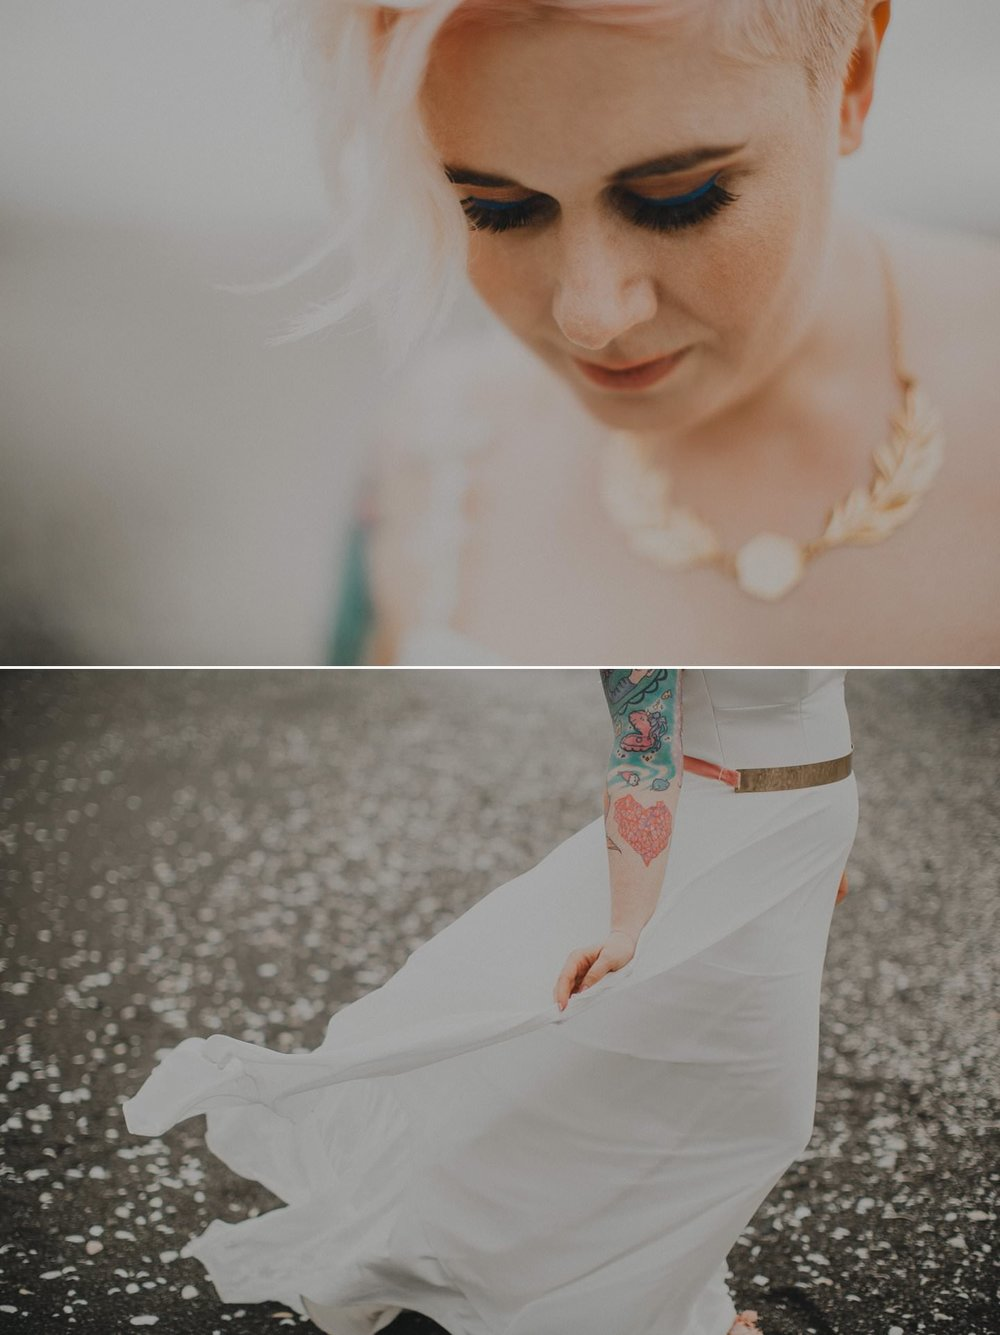 Inked bride with perfect eyebrows, Meadowlark jewelry and colored hair. Wearing a Sally Eagle wedding dress.